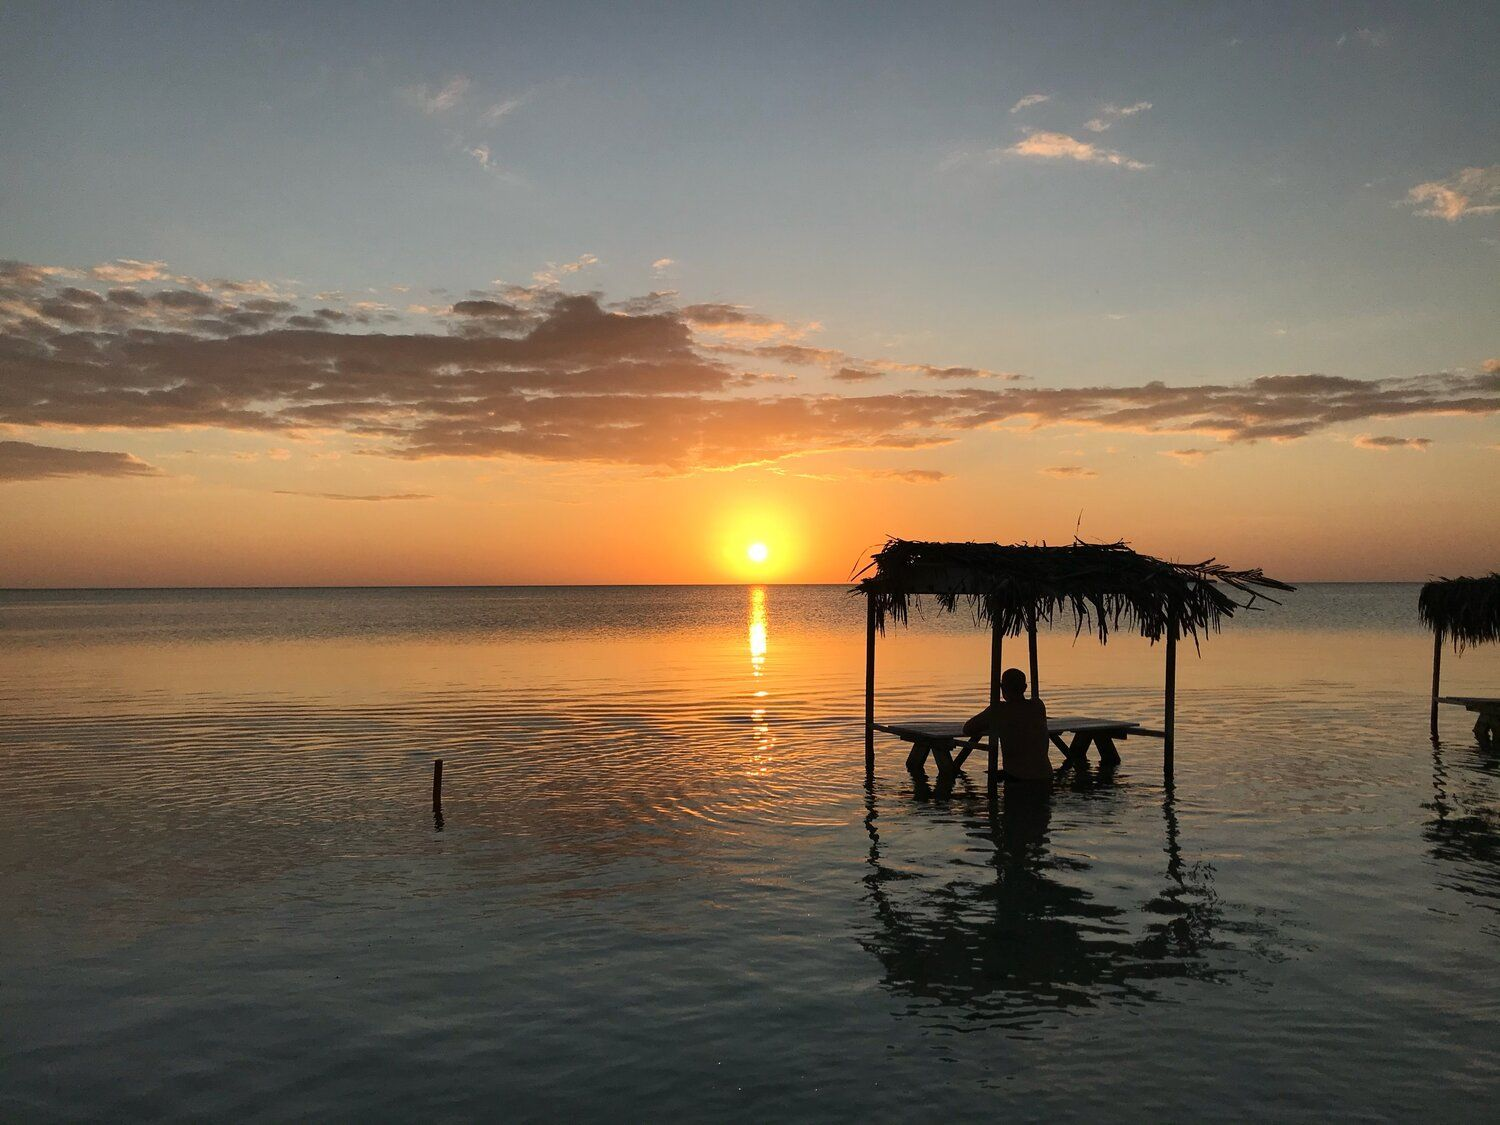 A sunset to remember at secret beach cabanas belize in